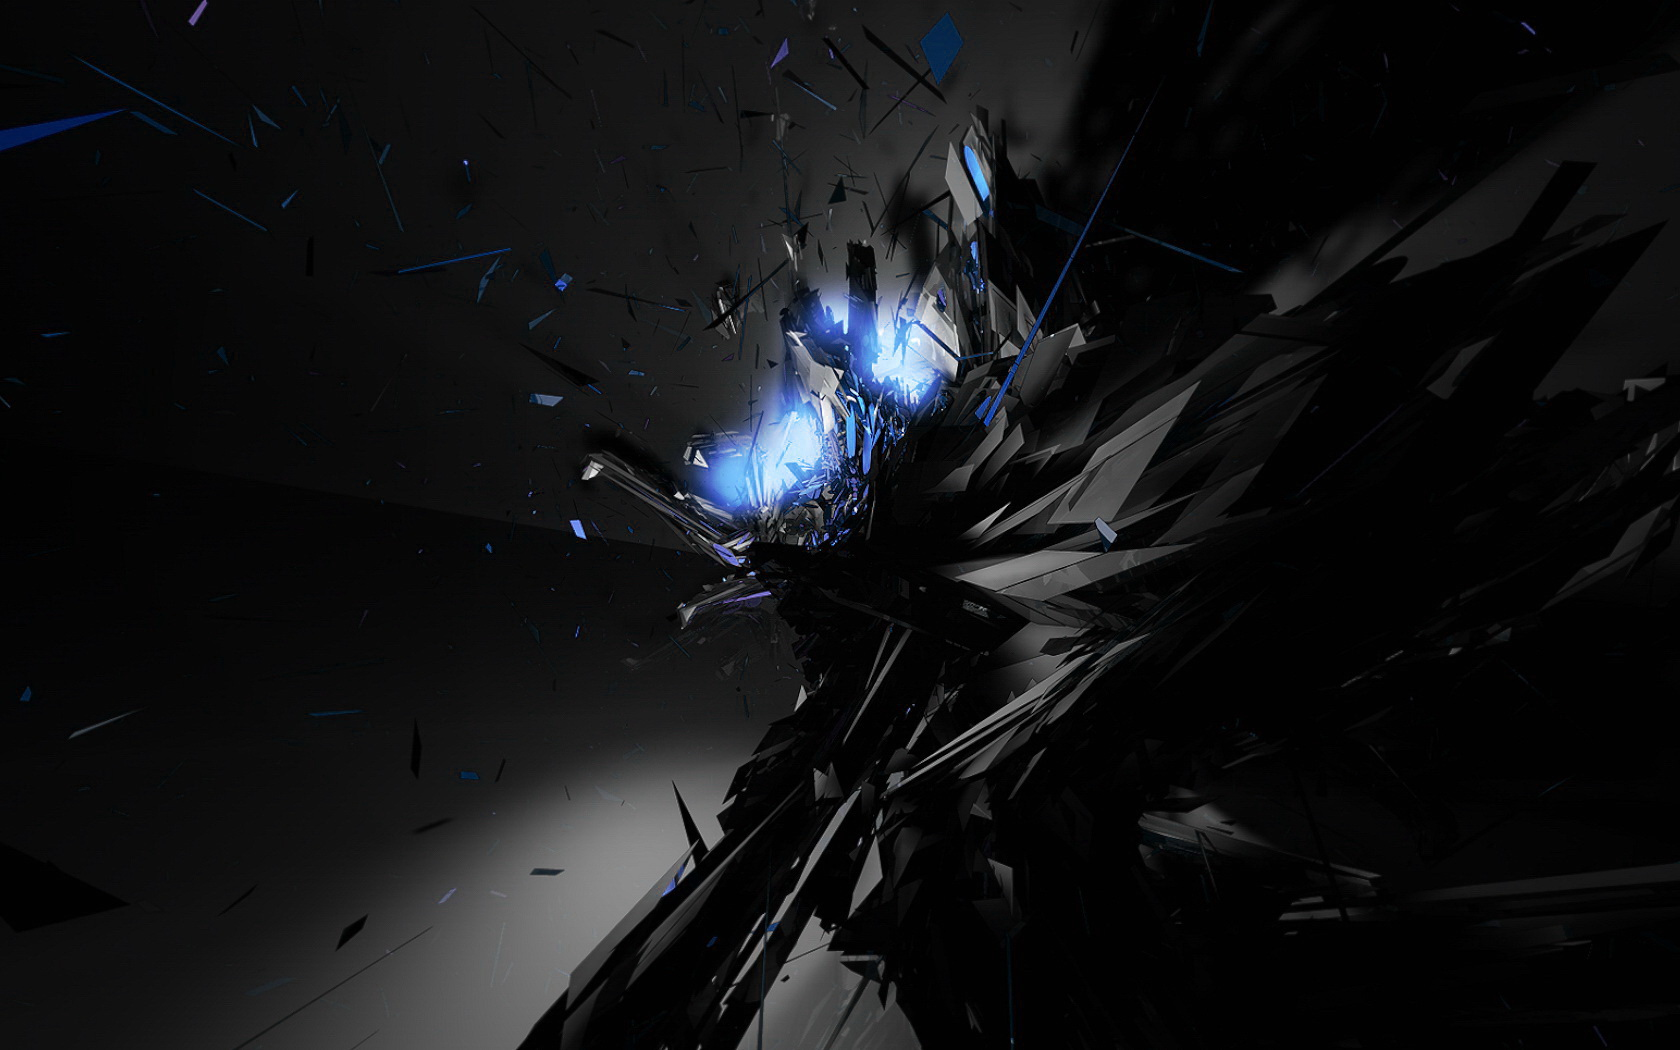 Awesome dark abstract wallpaper hd widescreen free - Abstract hd widescreen wallpapers ...